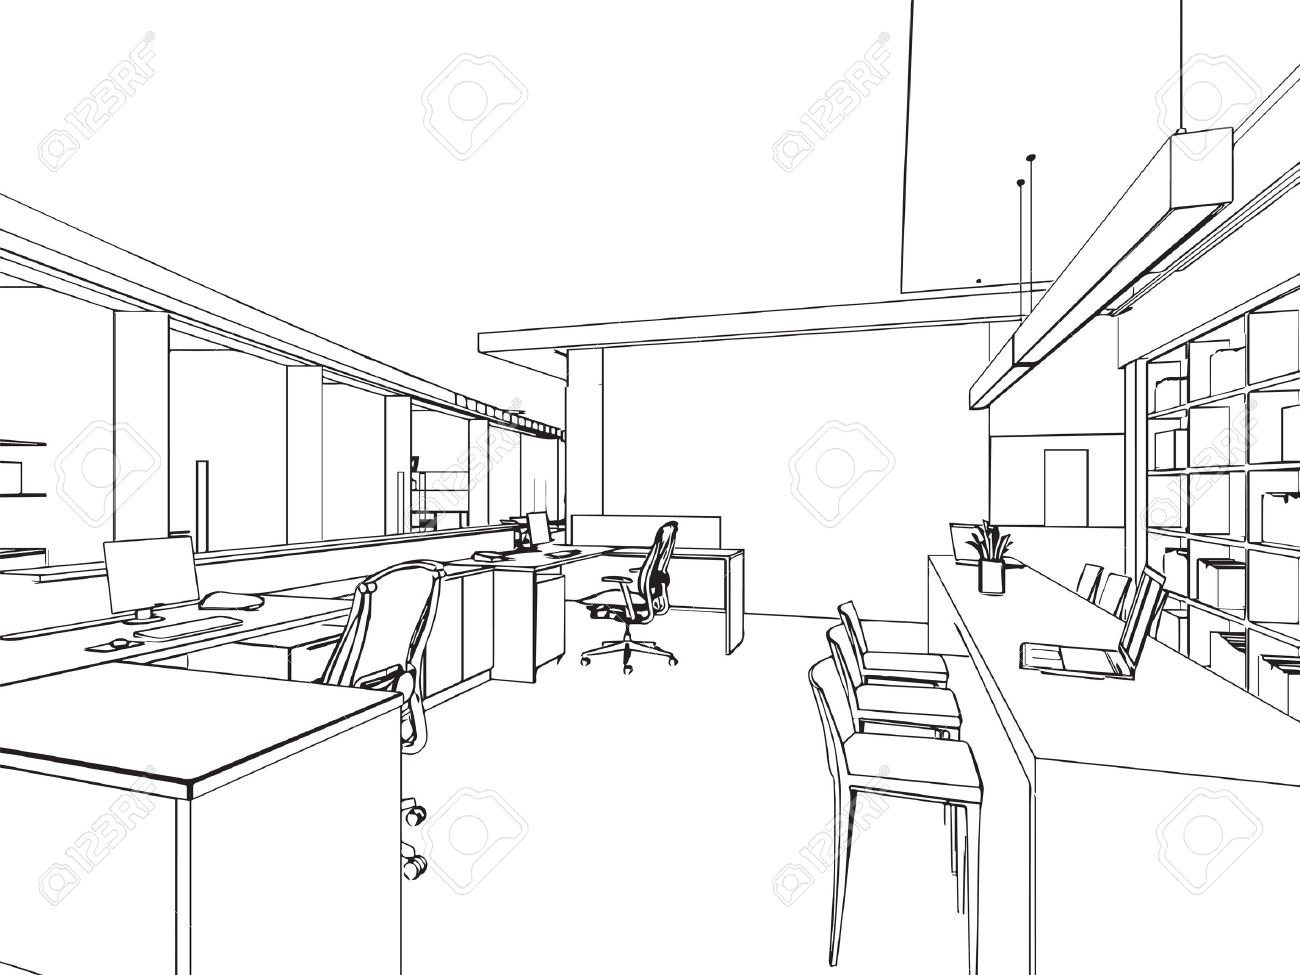 outline sketch drawing perspective of a interior space - 47595489